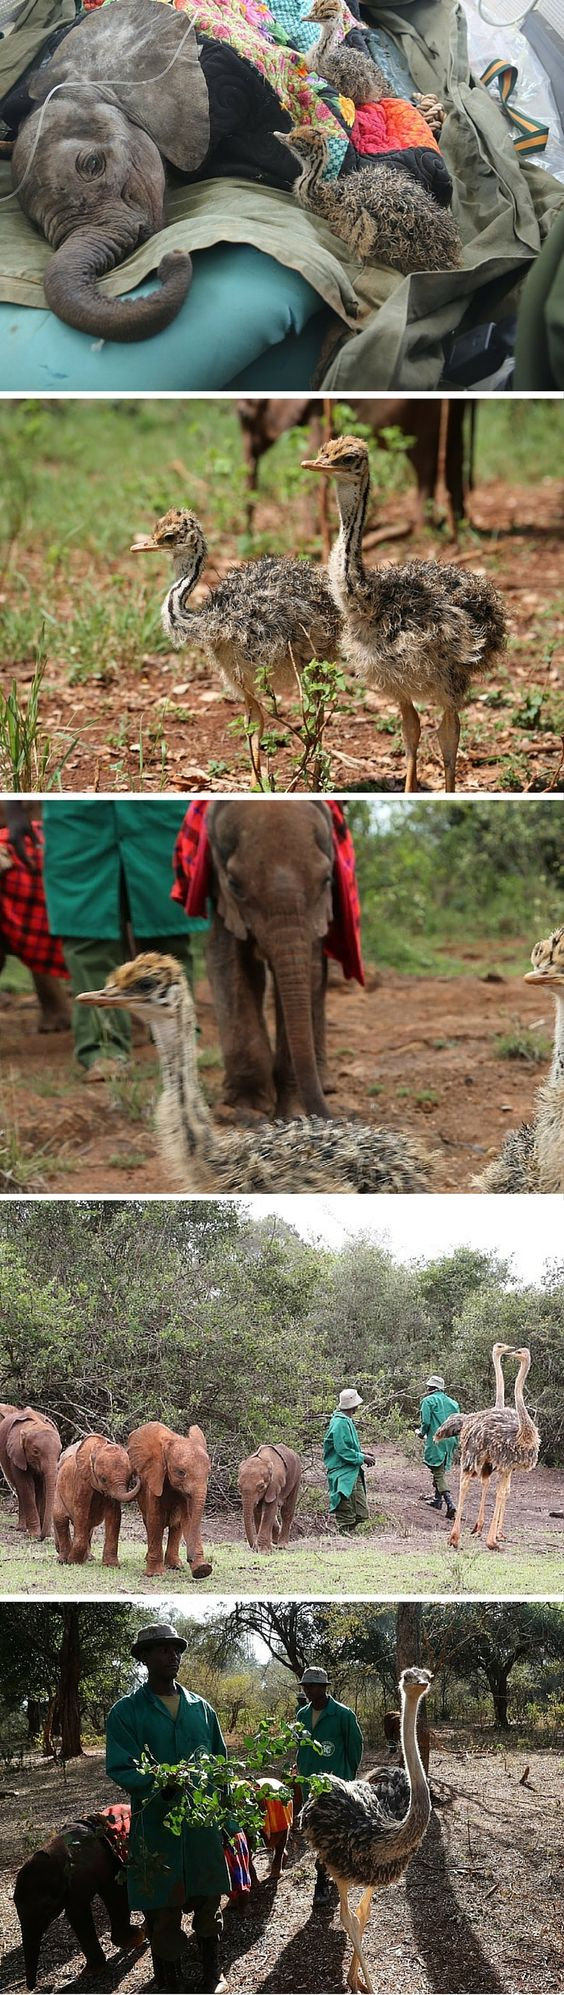 "Two orphaned ostriches, Pea and Pod, were rescued by the David Sheldrick Wildlife Fund, a sanctuary that helps to raise and nurture orphaned baby elephants. The two birds have become an integral part of the nursery family there. These two entertain thee baby elephants who love to charge them, hug them, and ""positively maul them with affection."""